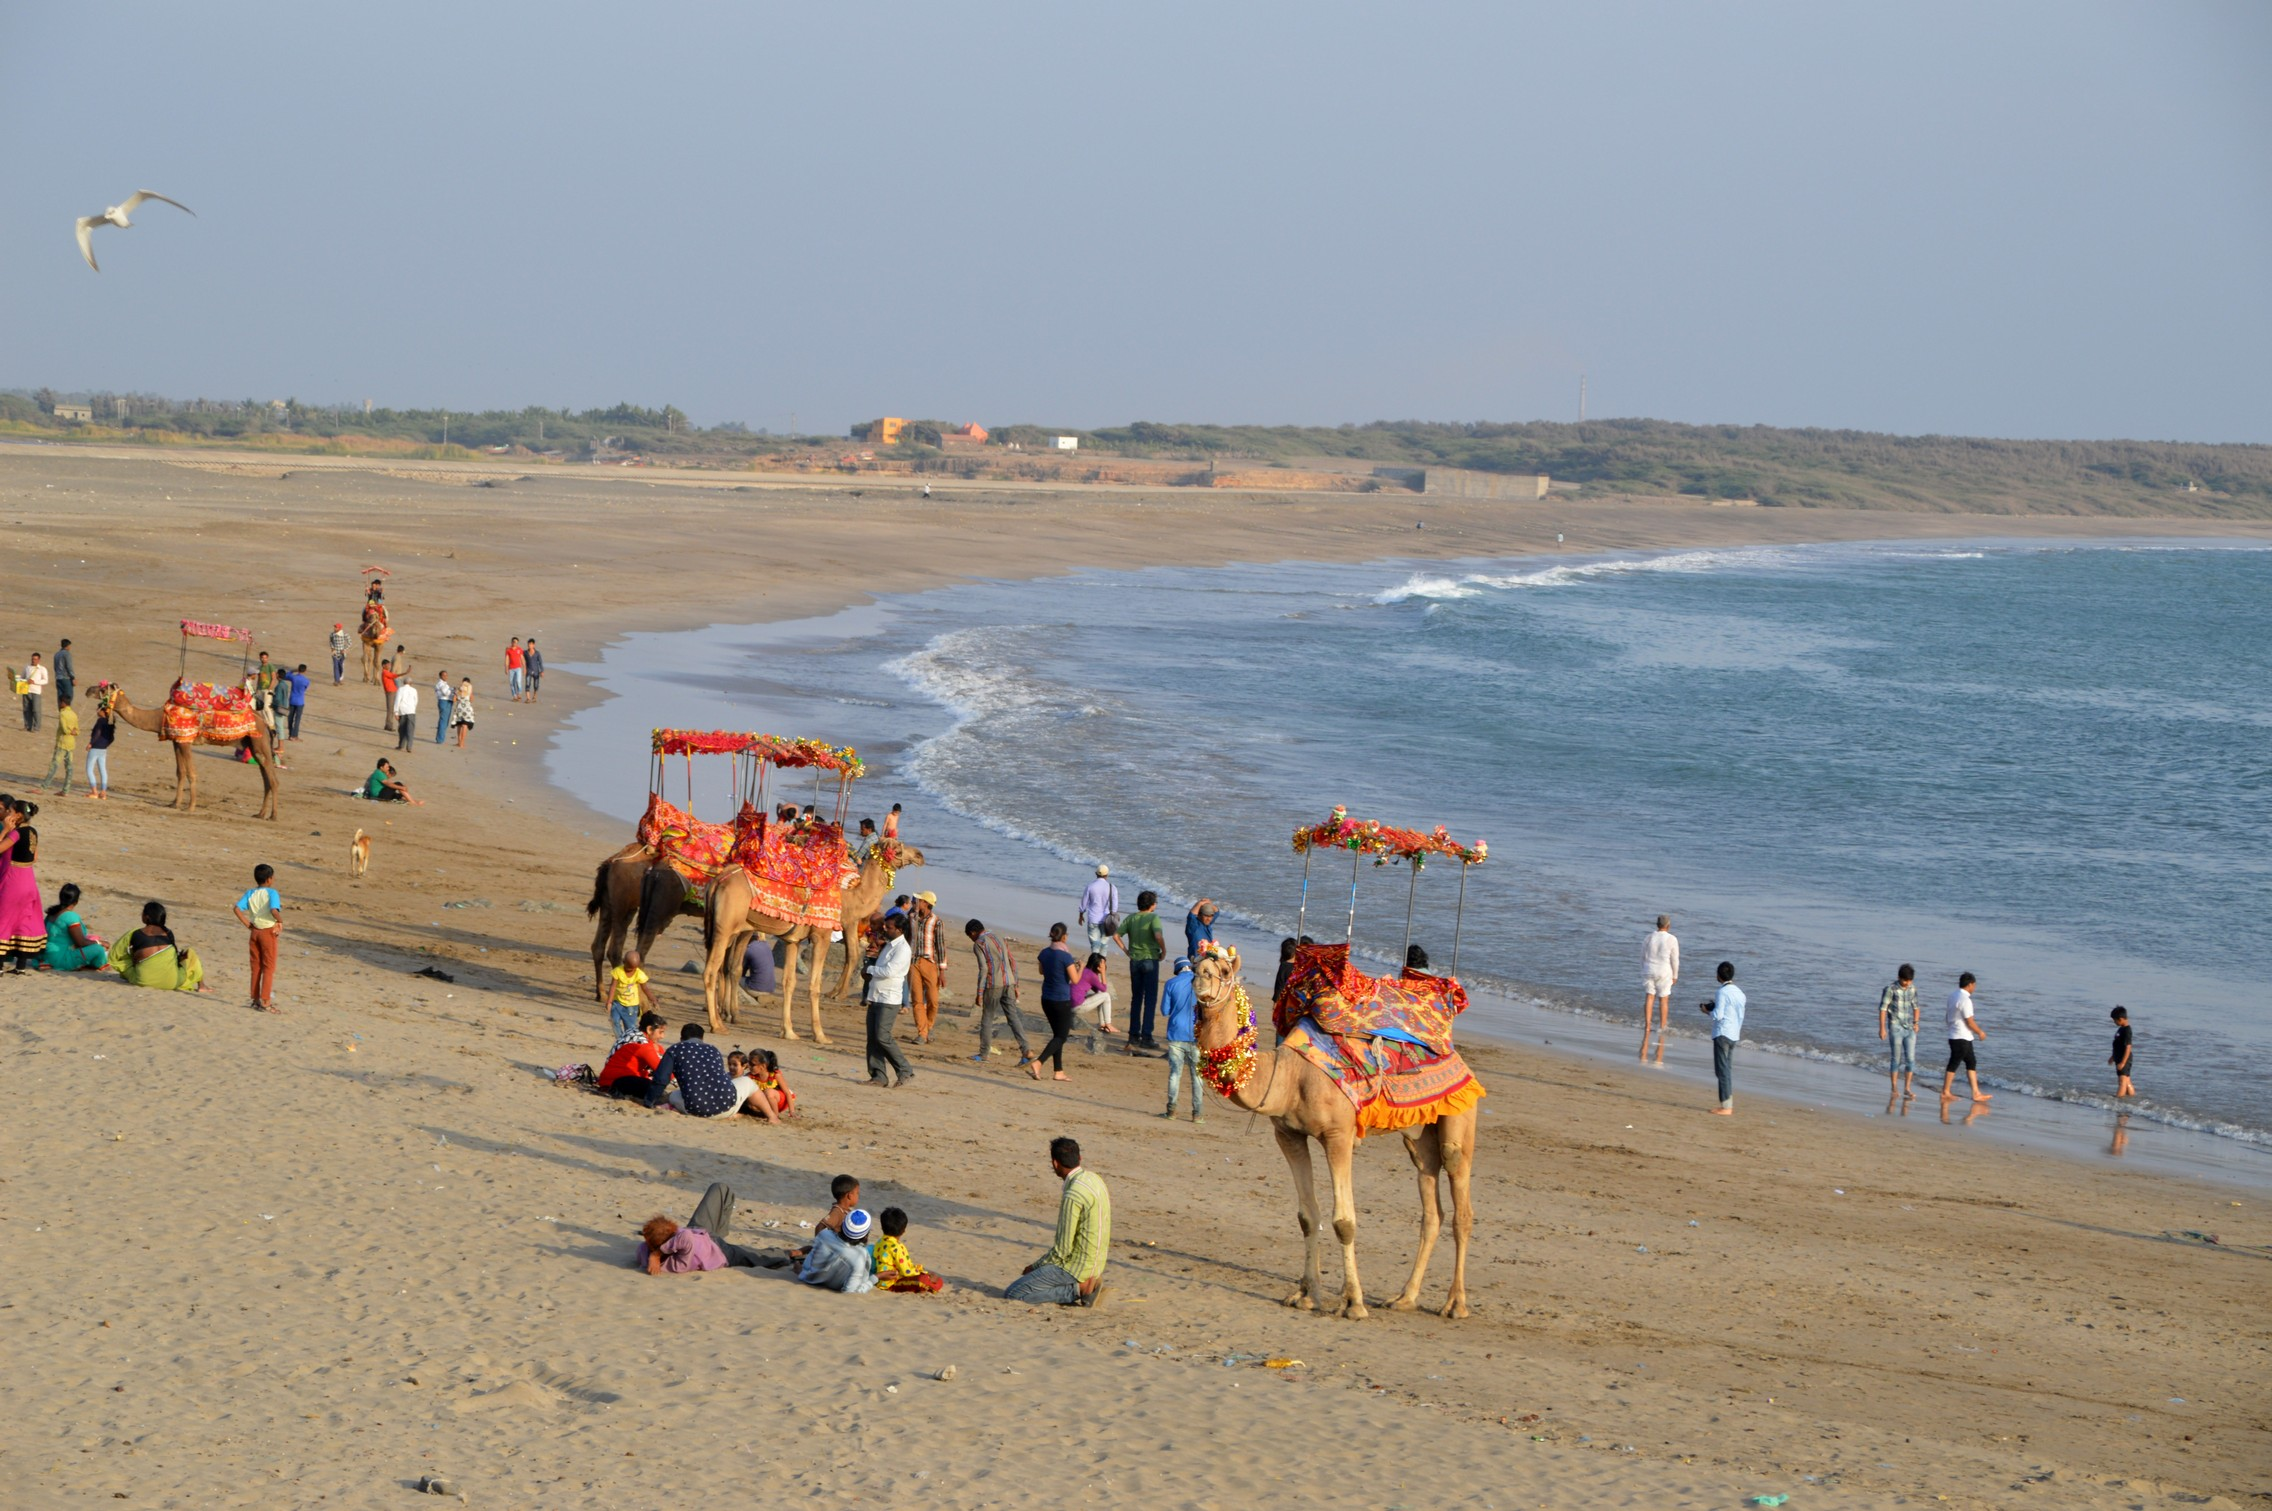 The Somnath Beach, adjoining the temple, has more life than the other beaches in Gujarat, thanks to its location